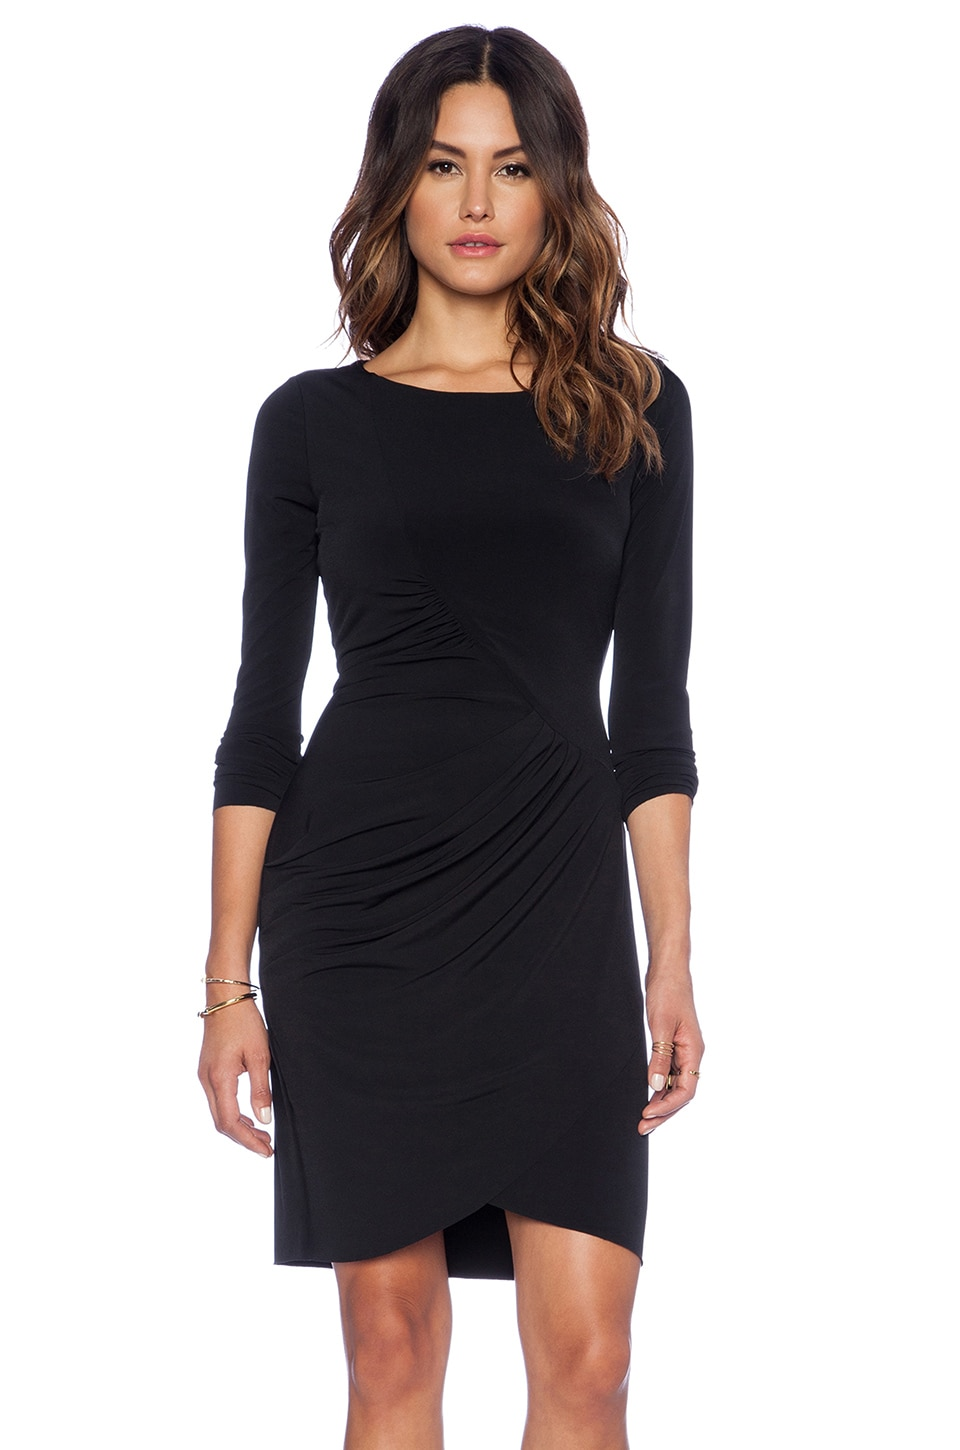 Velvet by Graham & Spencer Dove Stretch Jersey with Lace Dress in Black